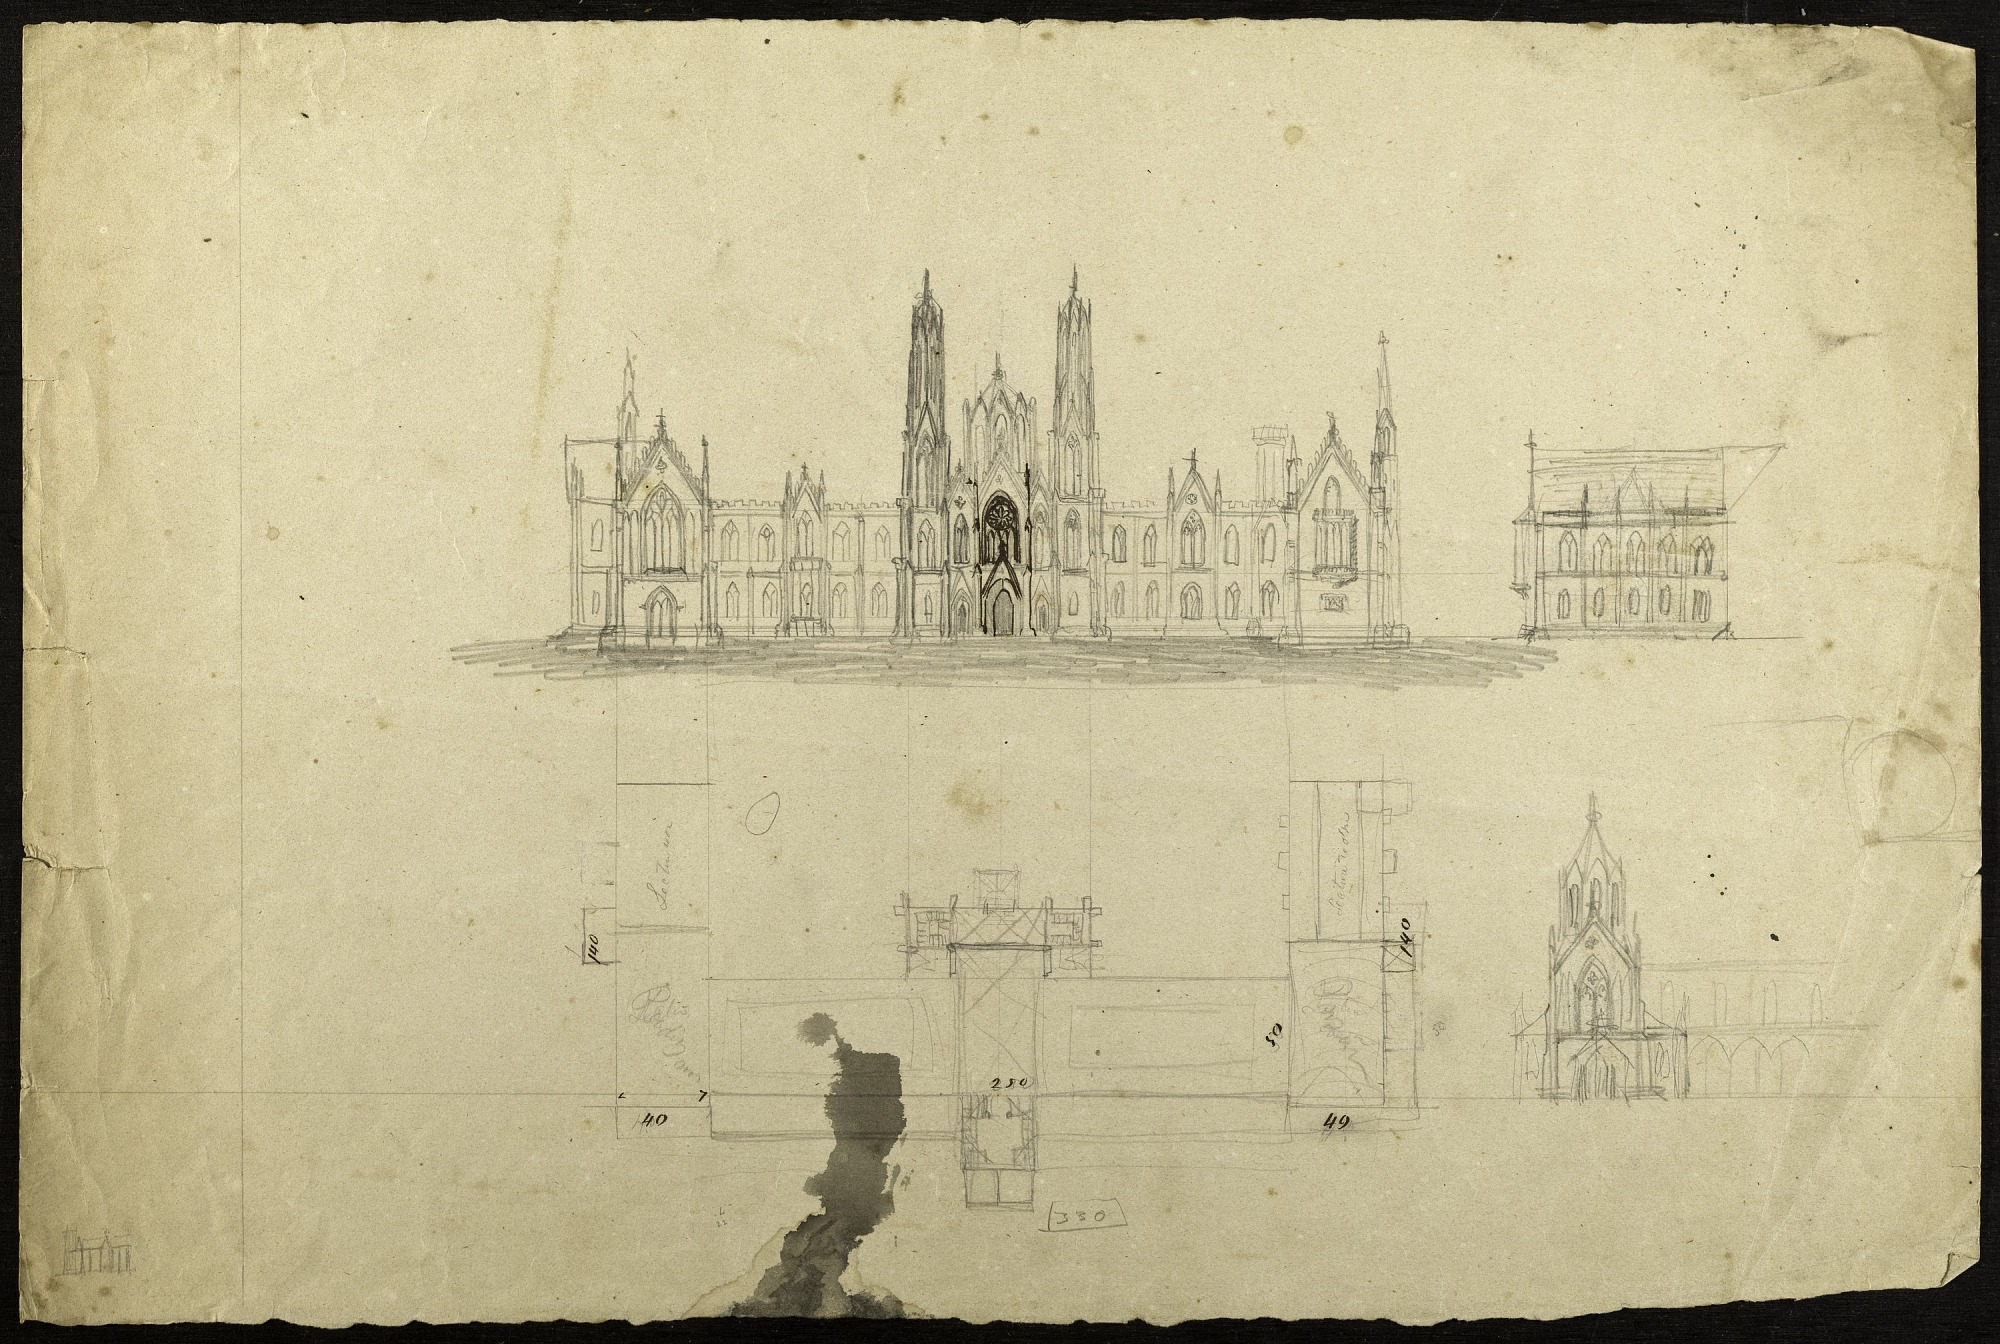 Earliest Known Sketches of the Smithsonian Institution Building